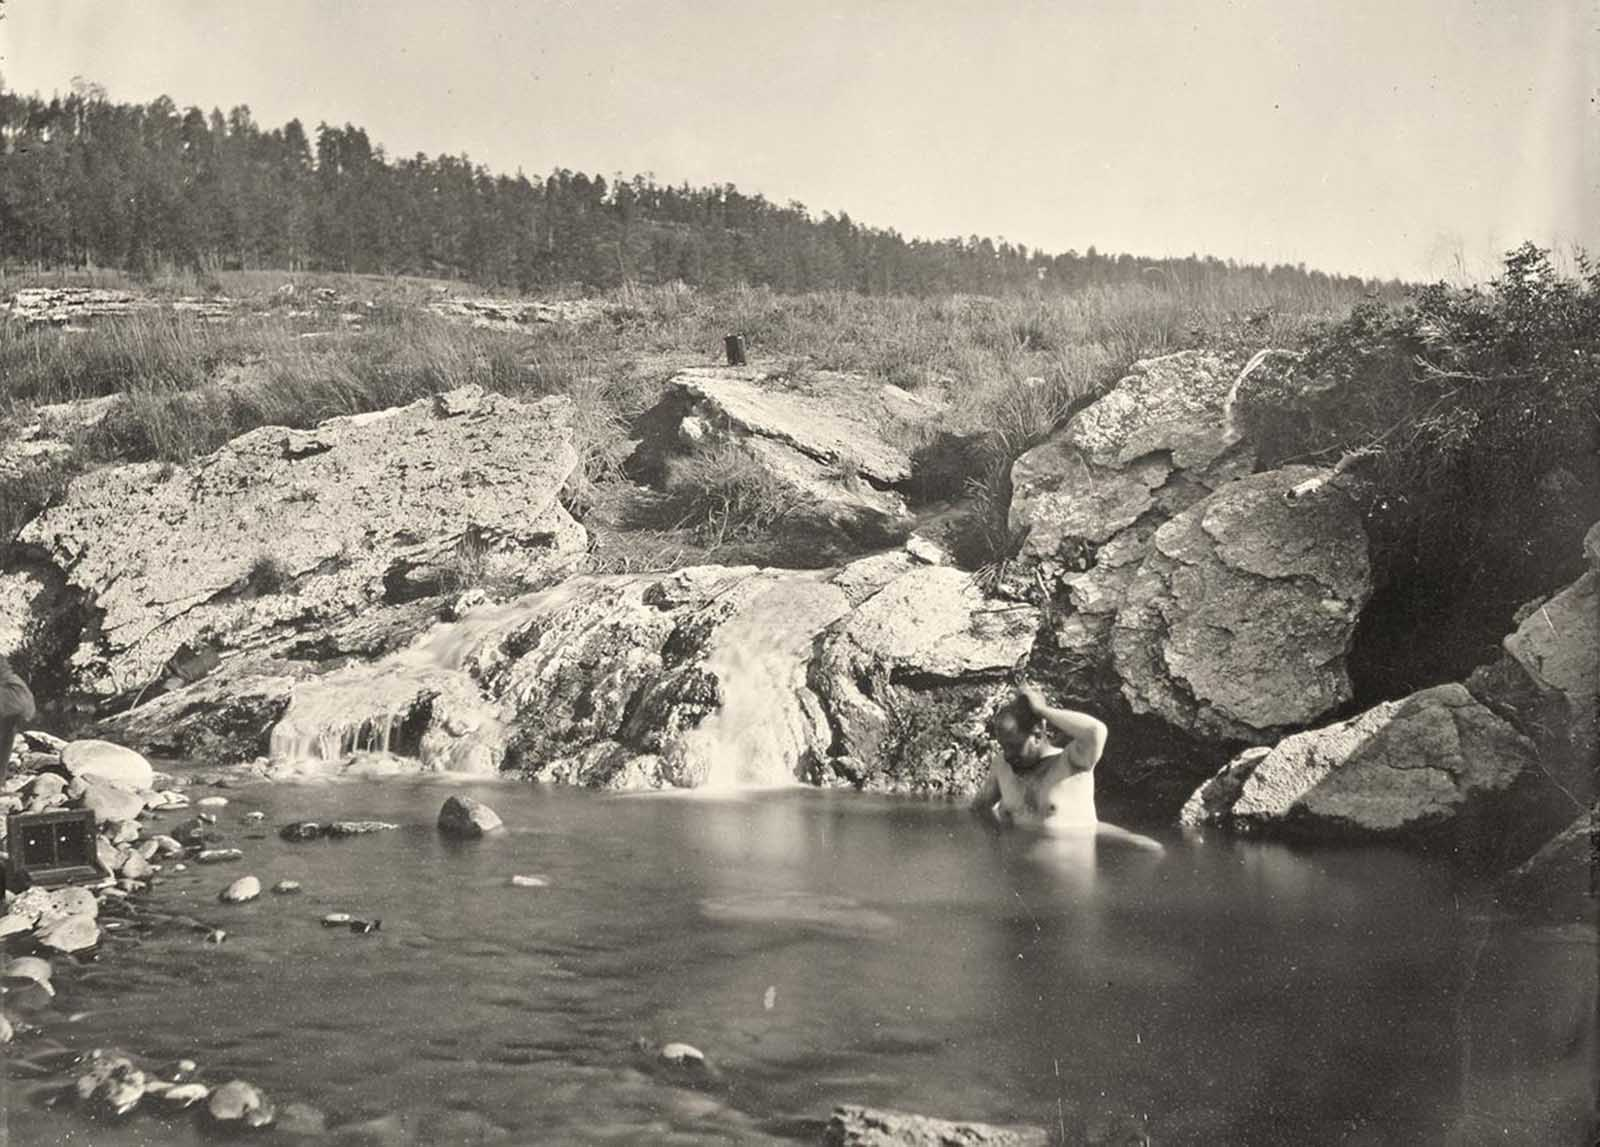 Man bathing in Pagosa Hot Spring, Colorado, in 1874.